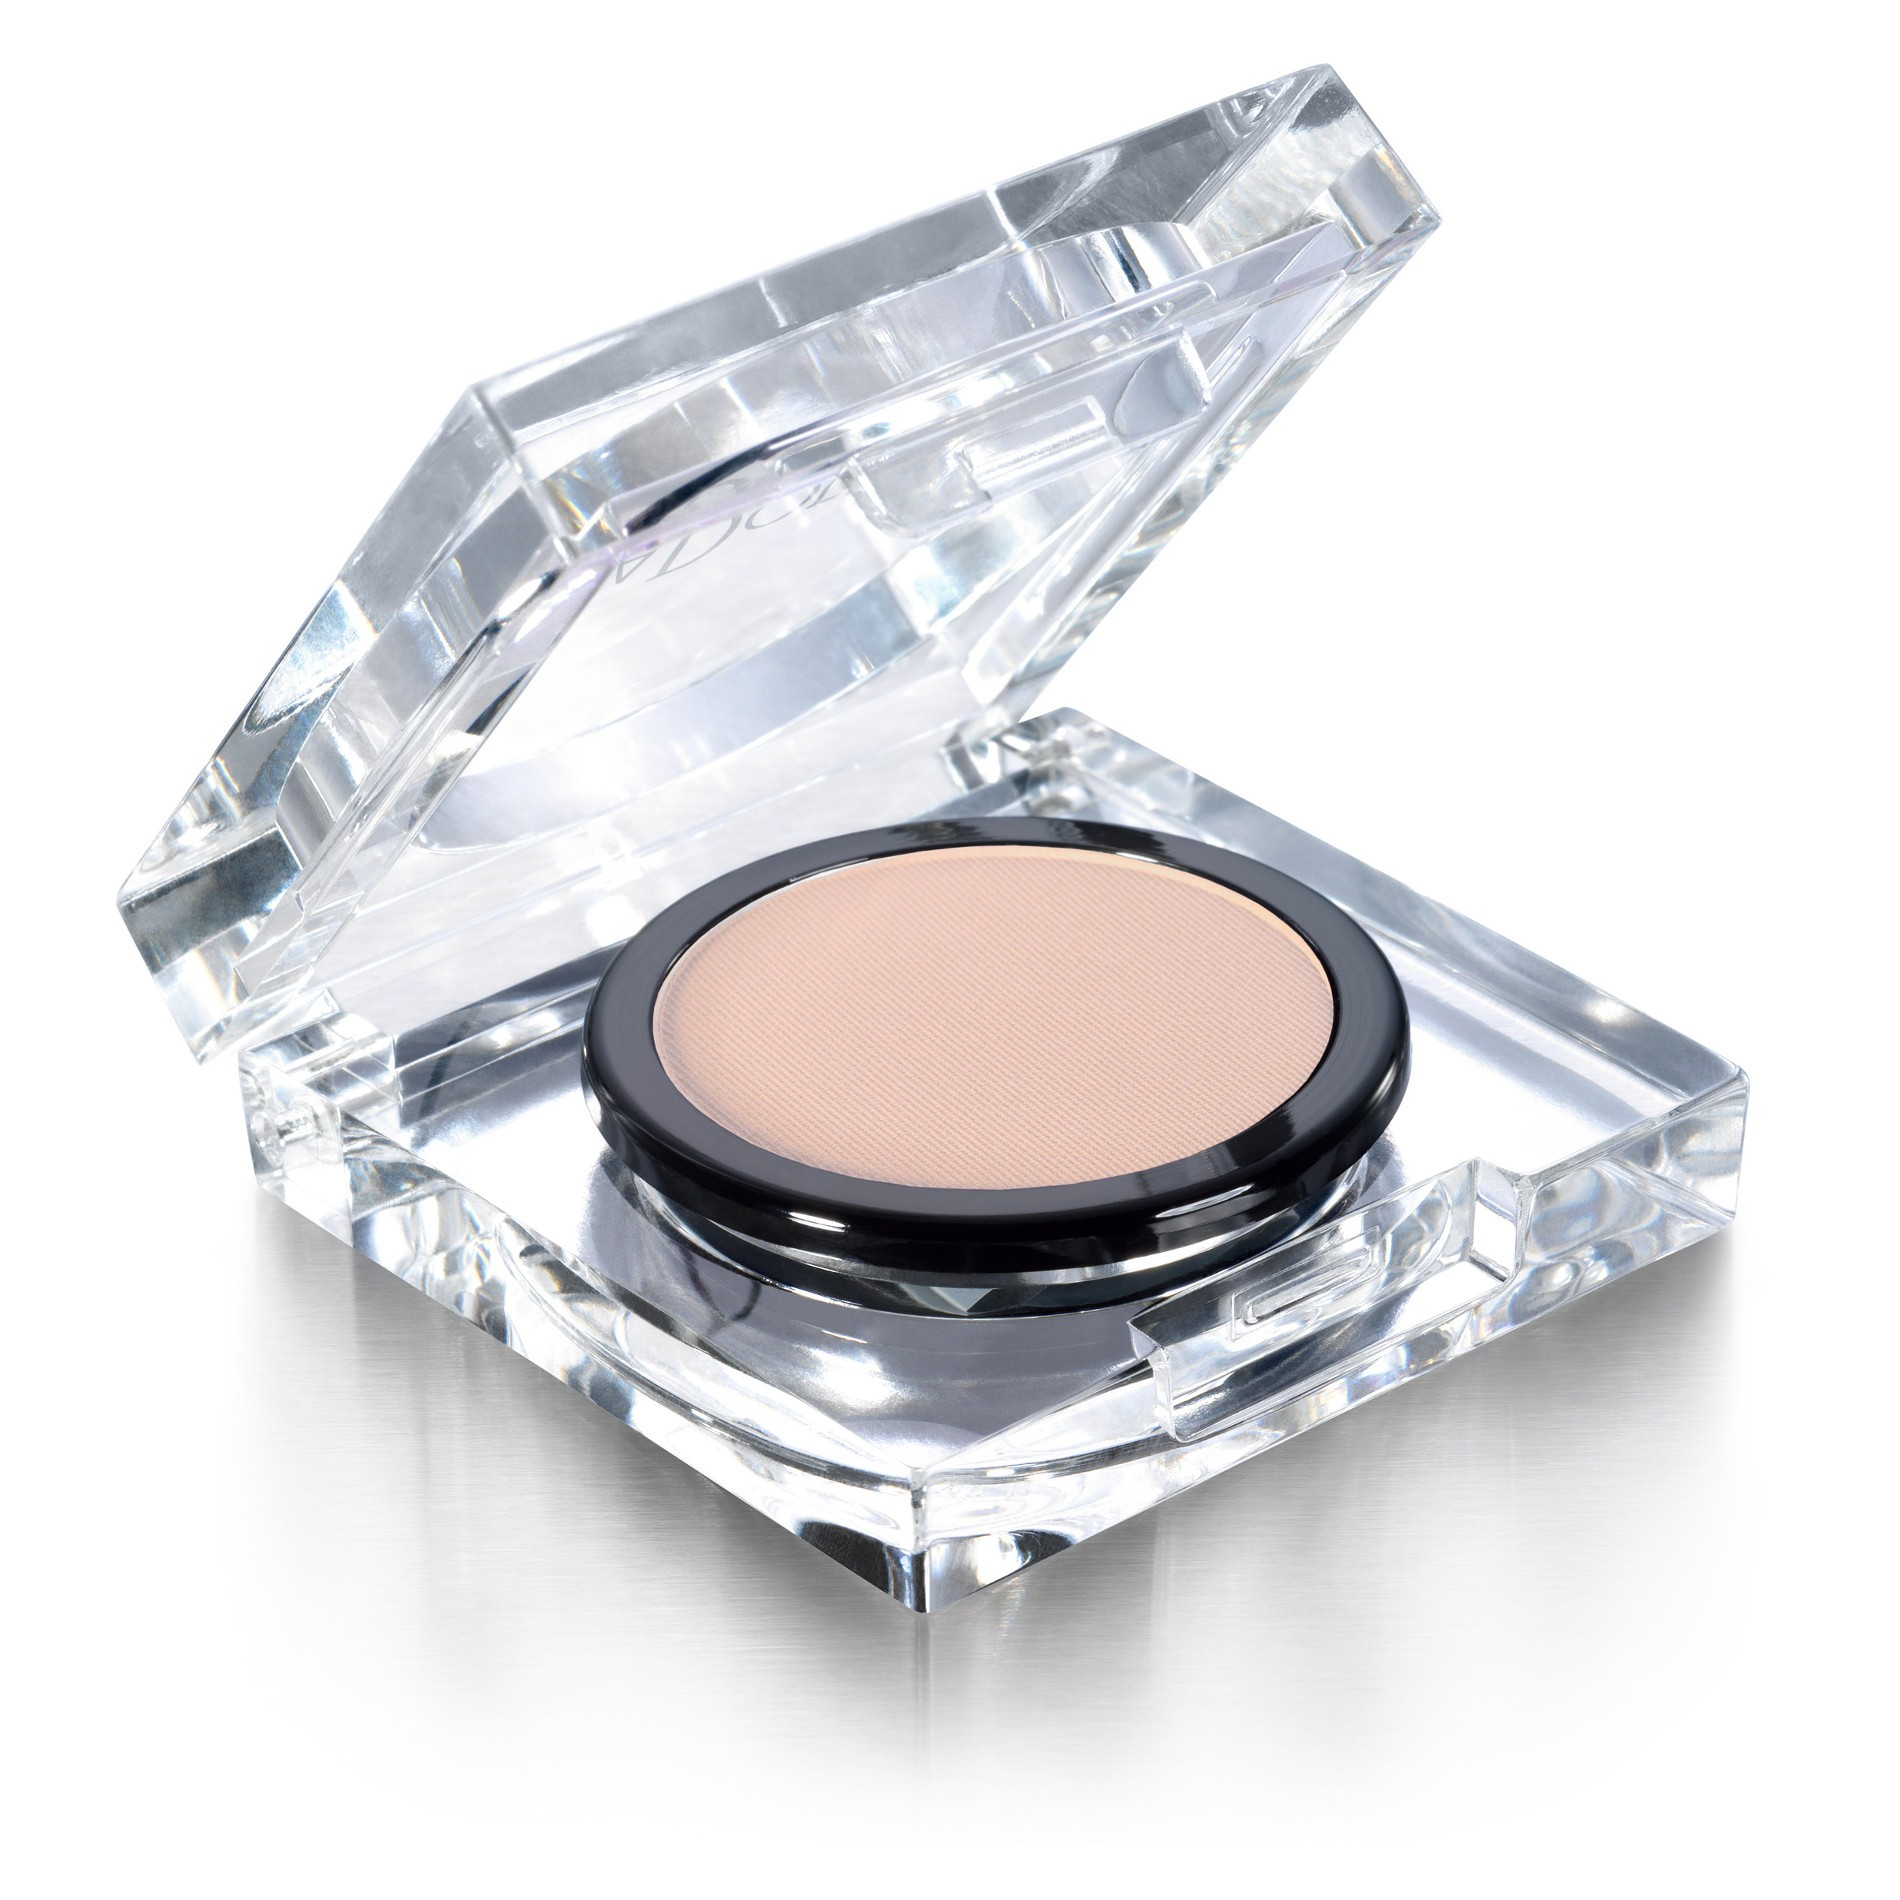 Eye Focus Single Eye Shadow